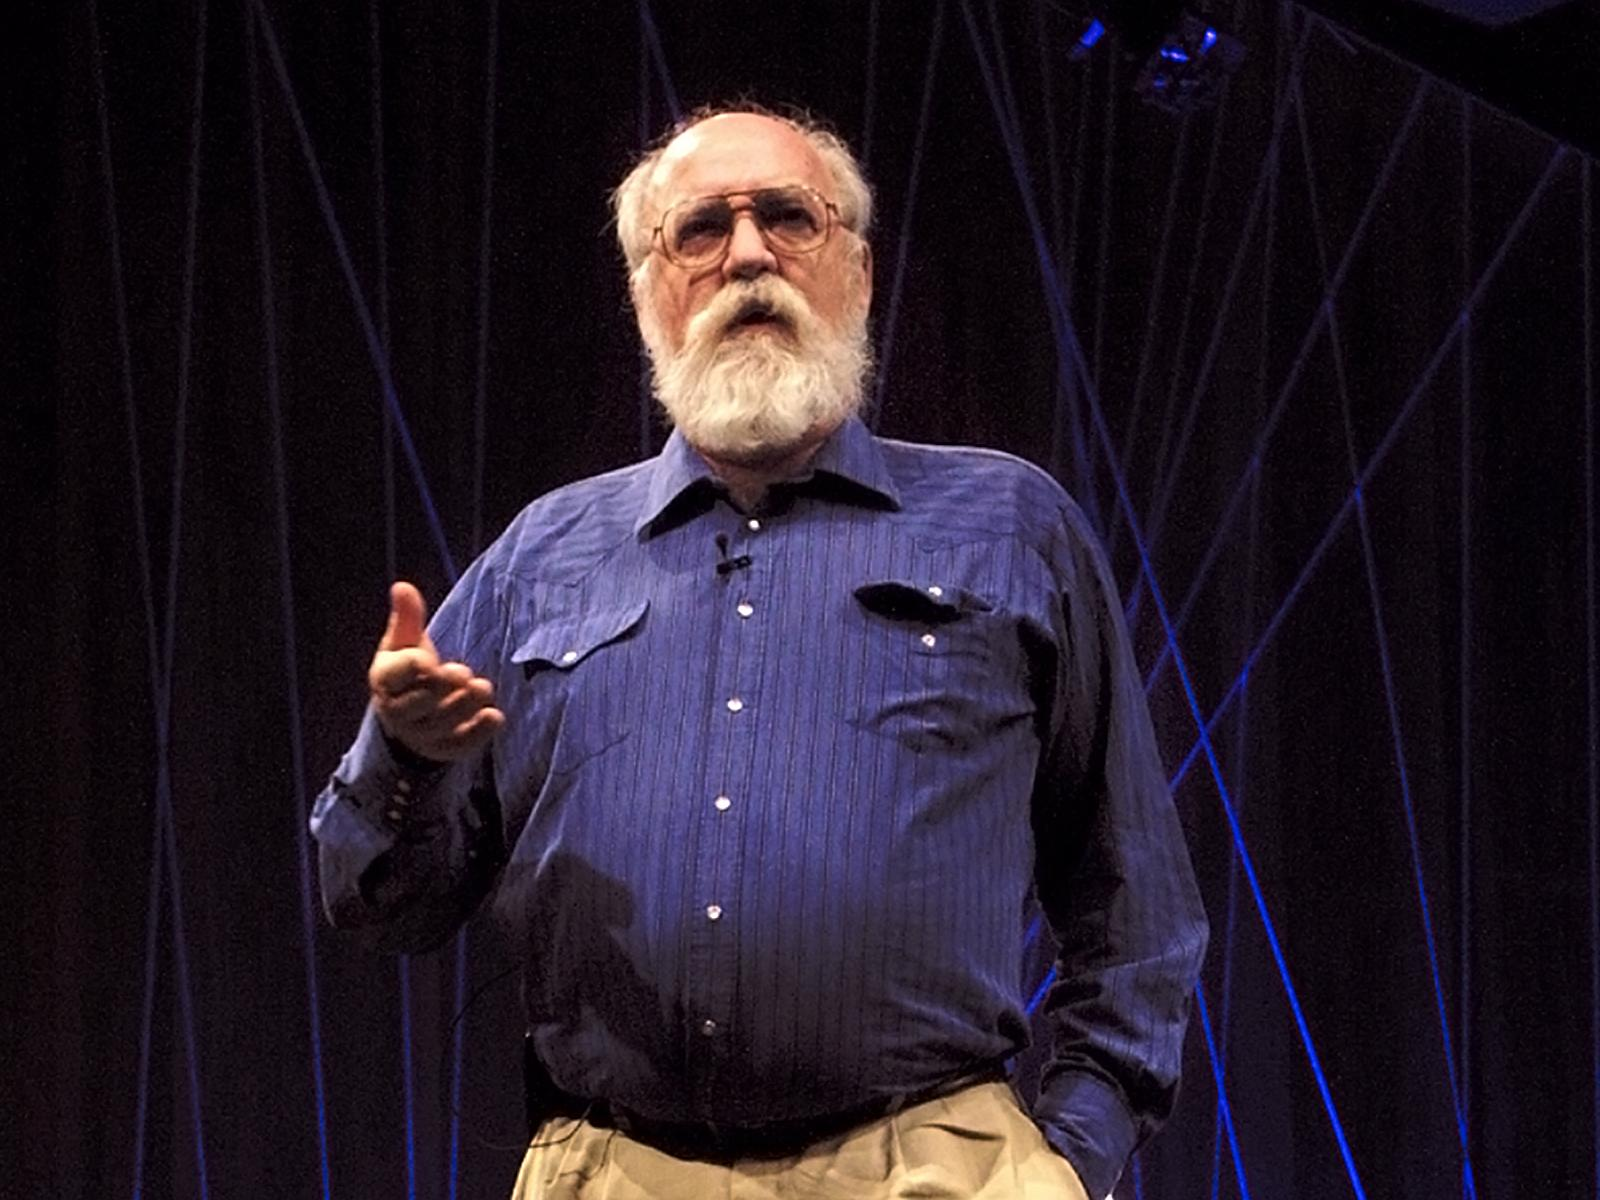 Ted talks on consciousness